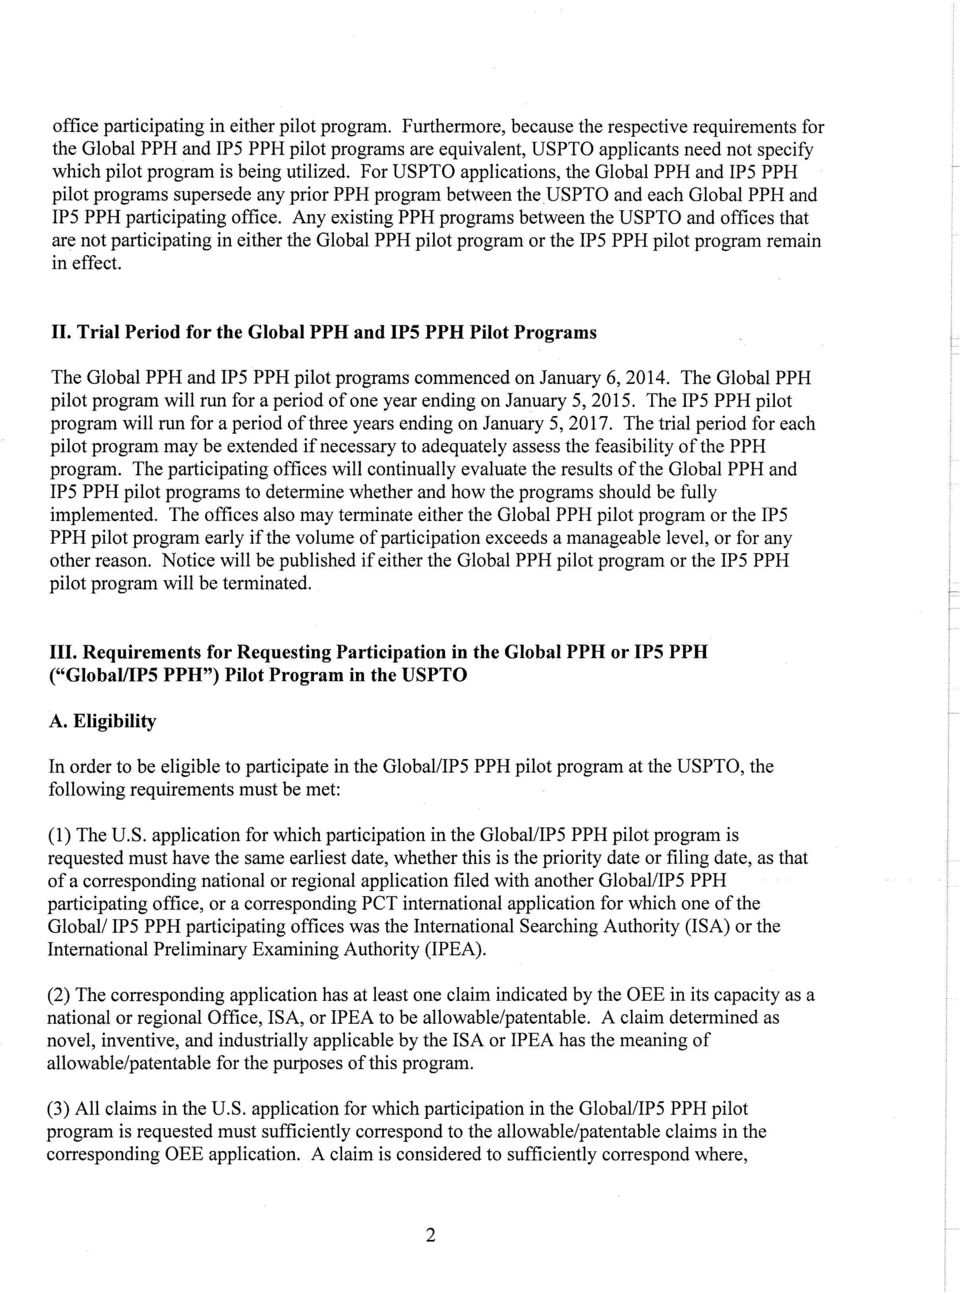 For USPTO applications, the Global PPH and IP5 PPH pilot programs supersede any prior PPH program between theuspto and each Global PPH and IP5 PPH participating office.